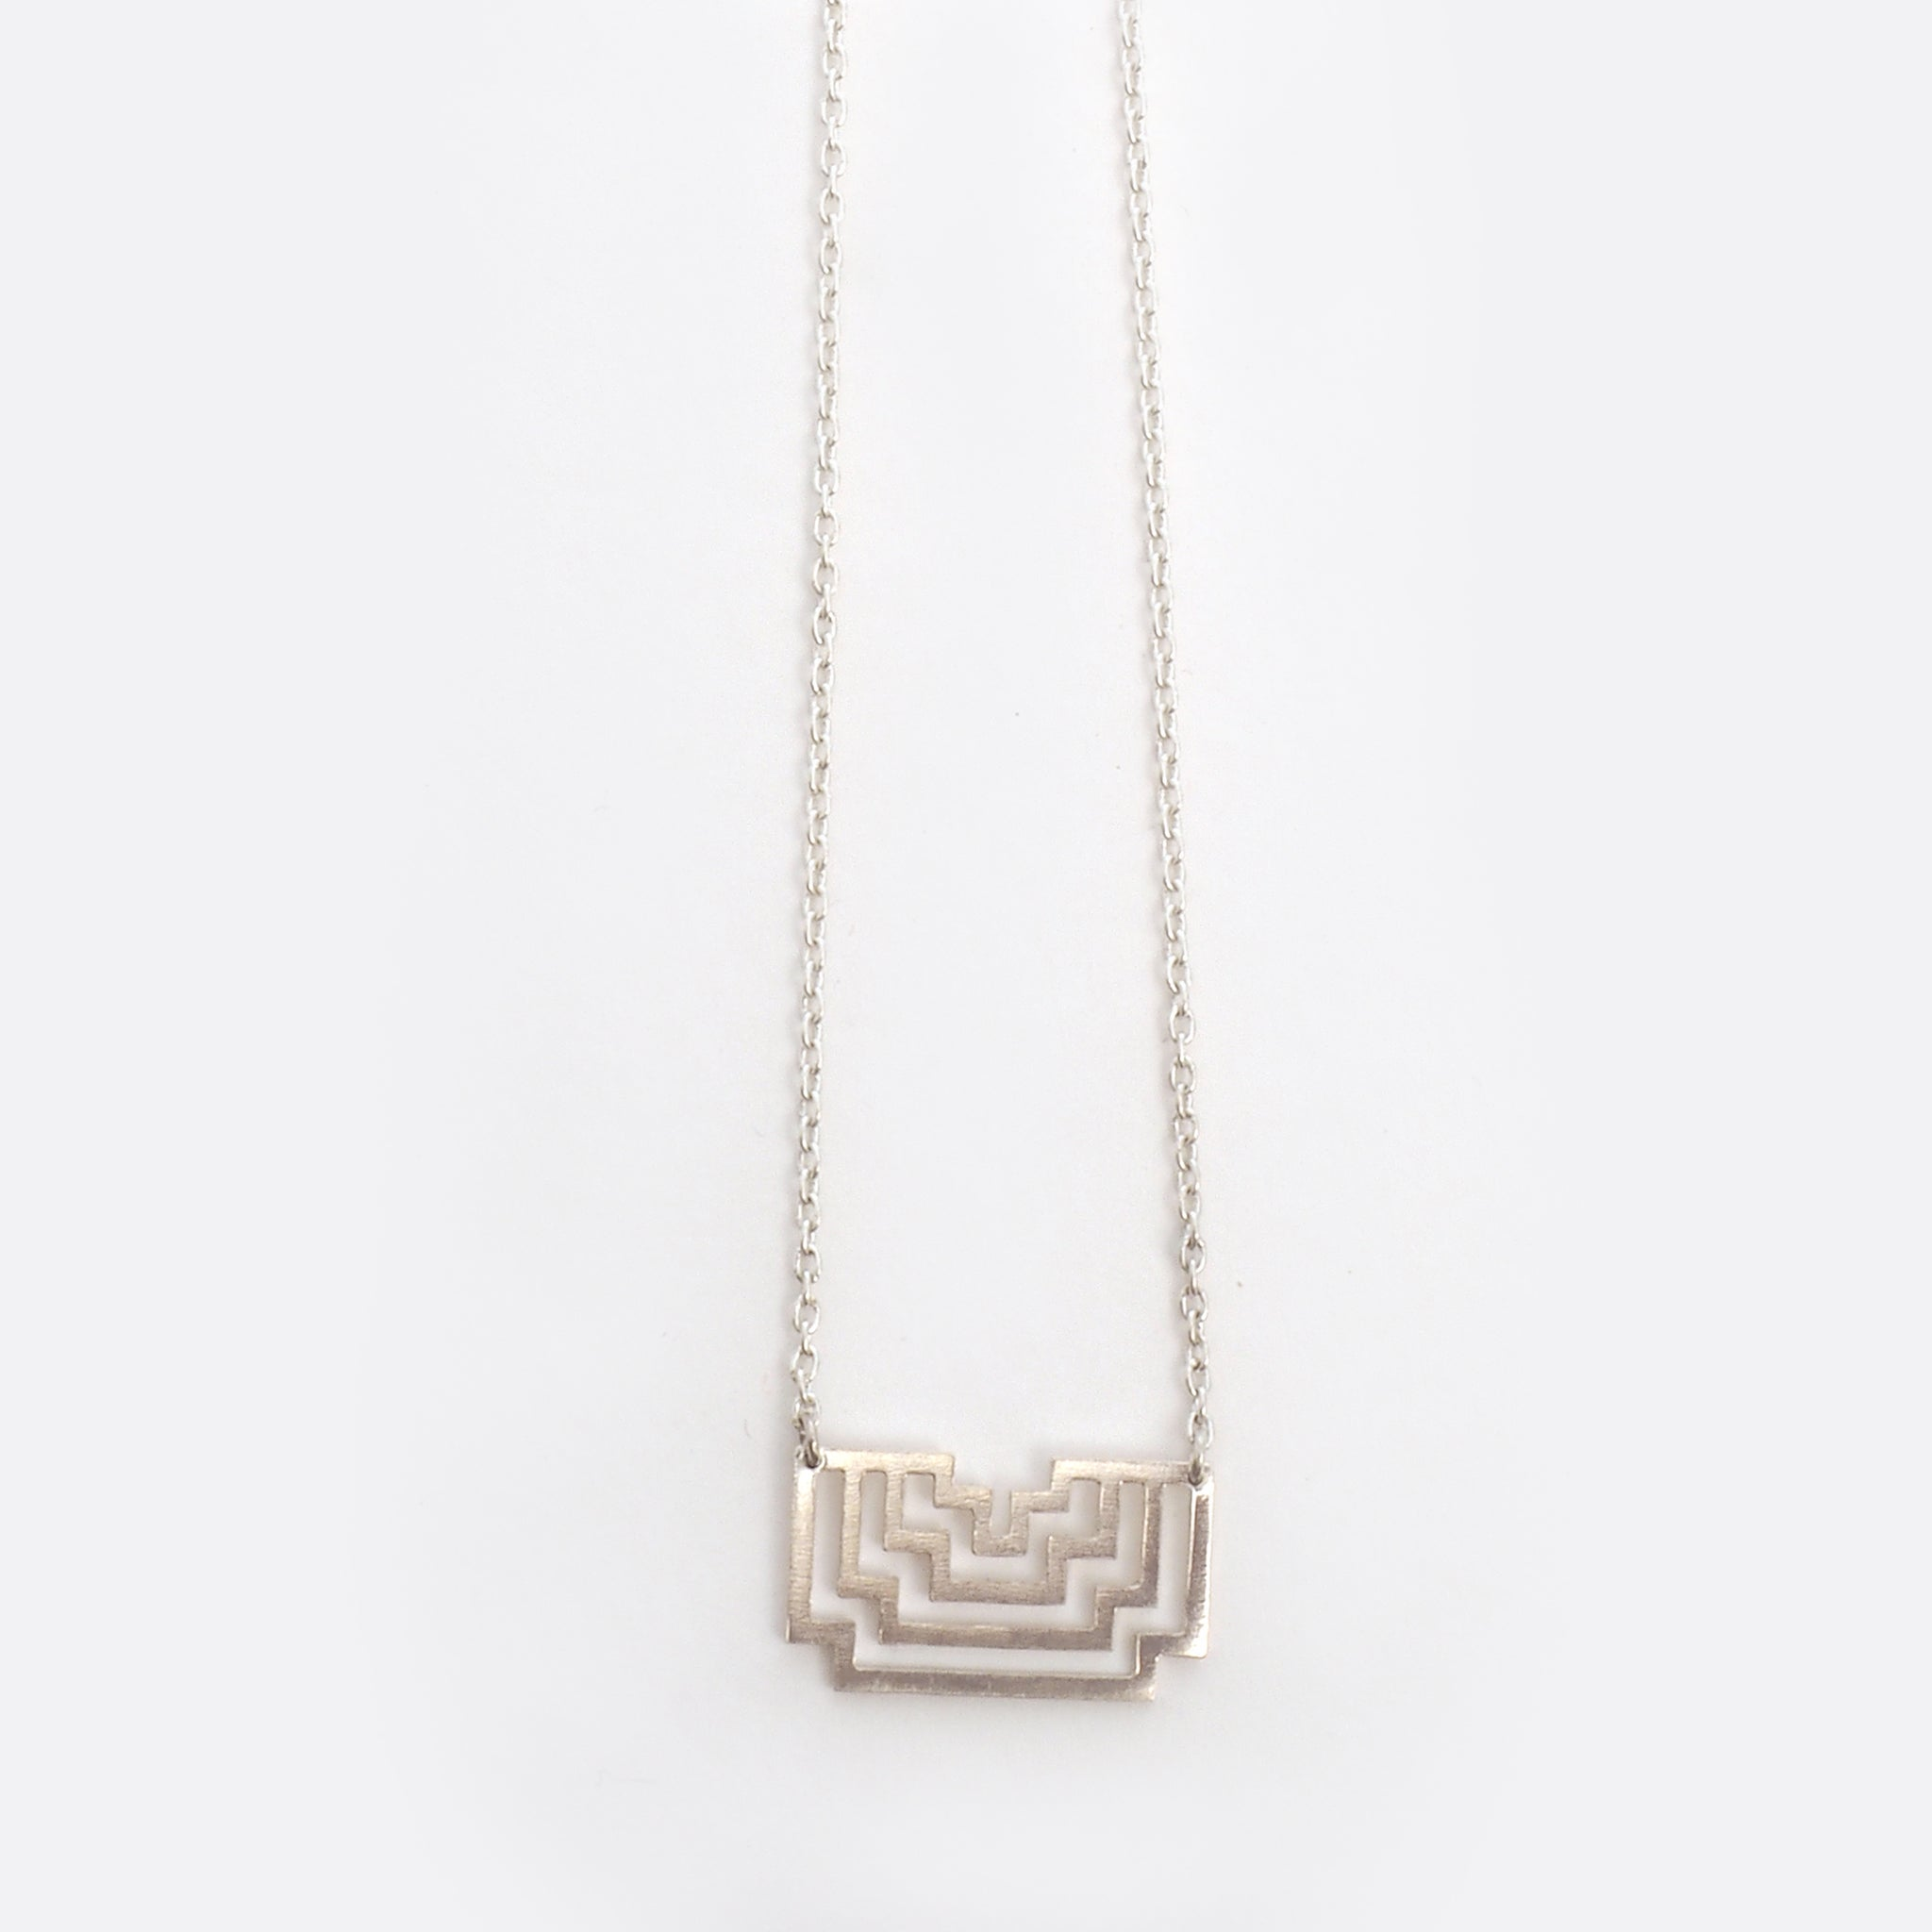 Homage To Peti – Small Silver Necklace